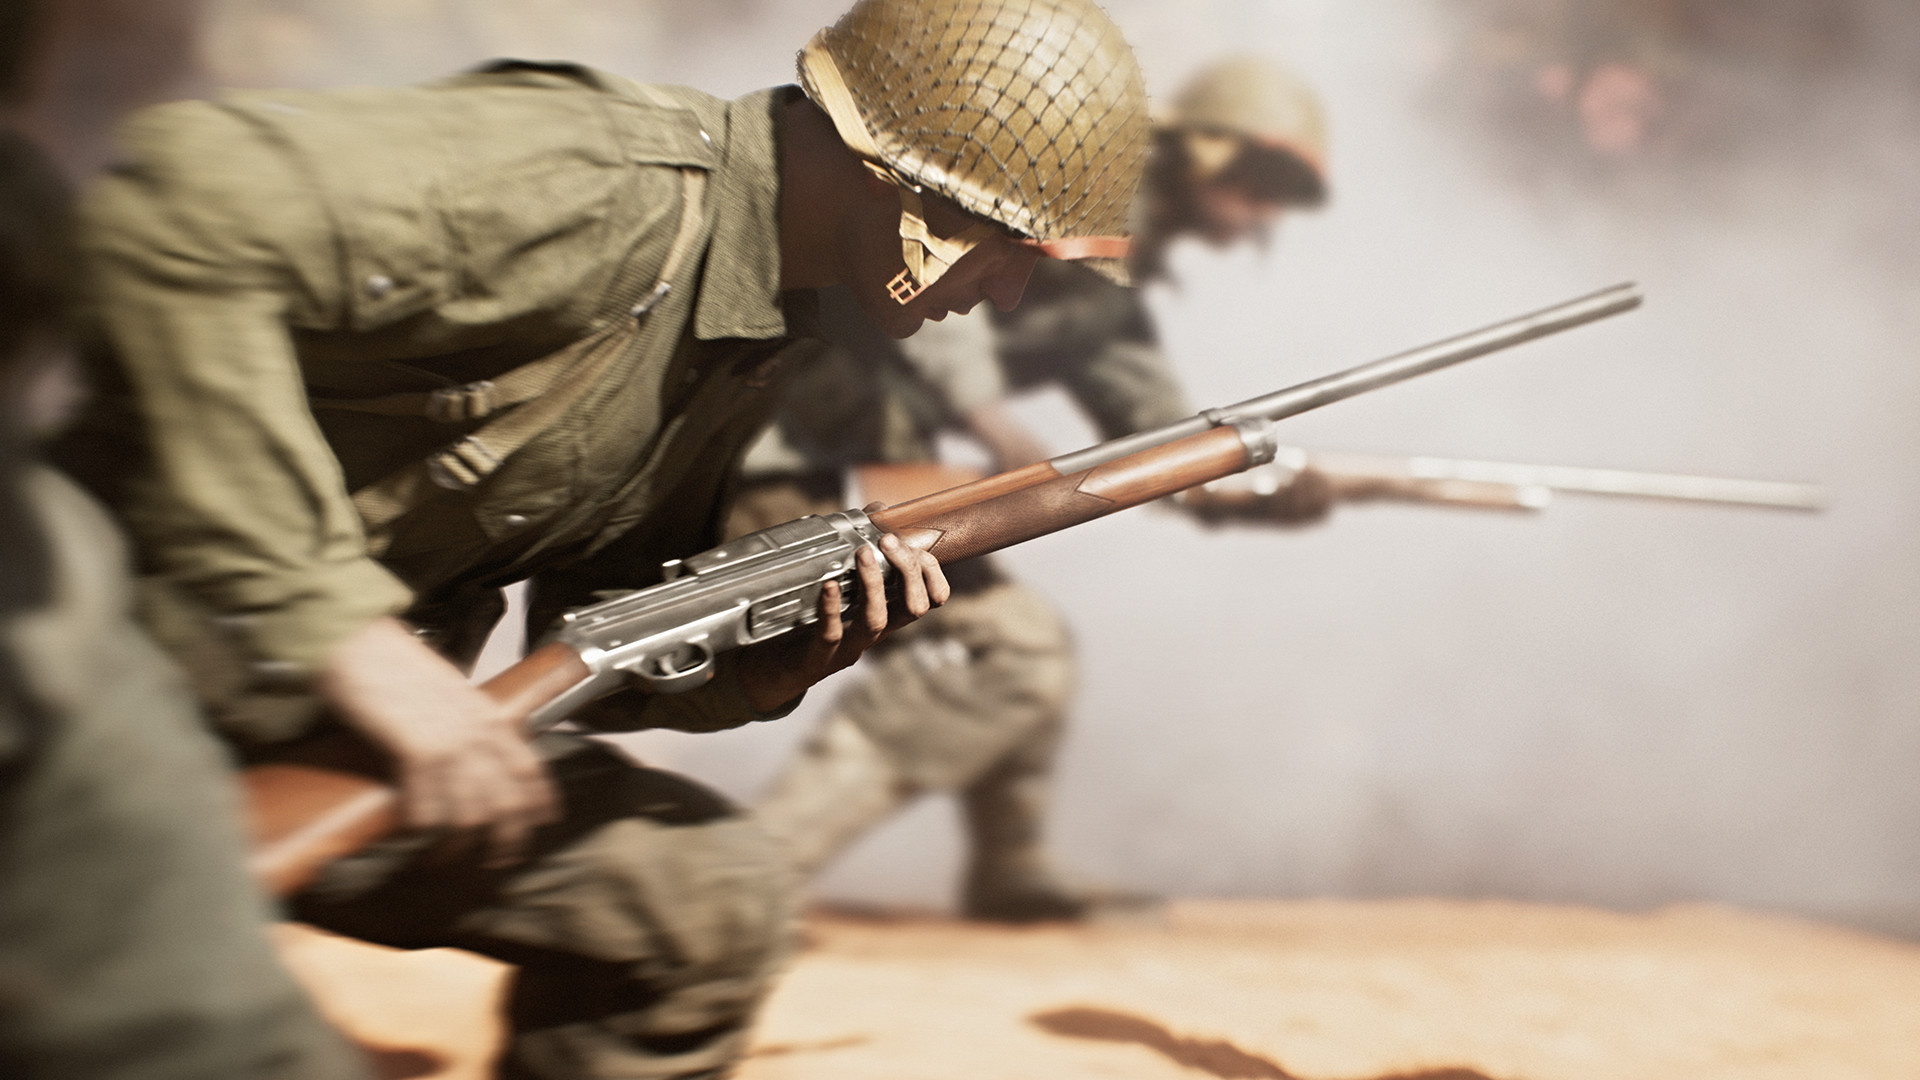 Battlefield 6 could have free-to-play features, battle pass